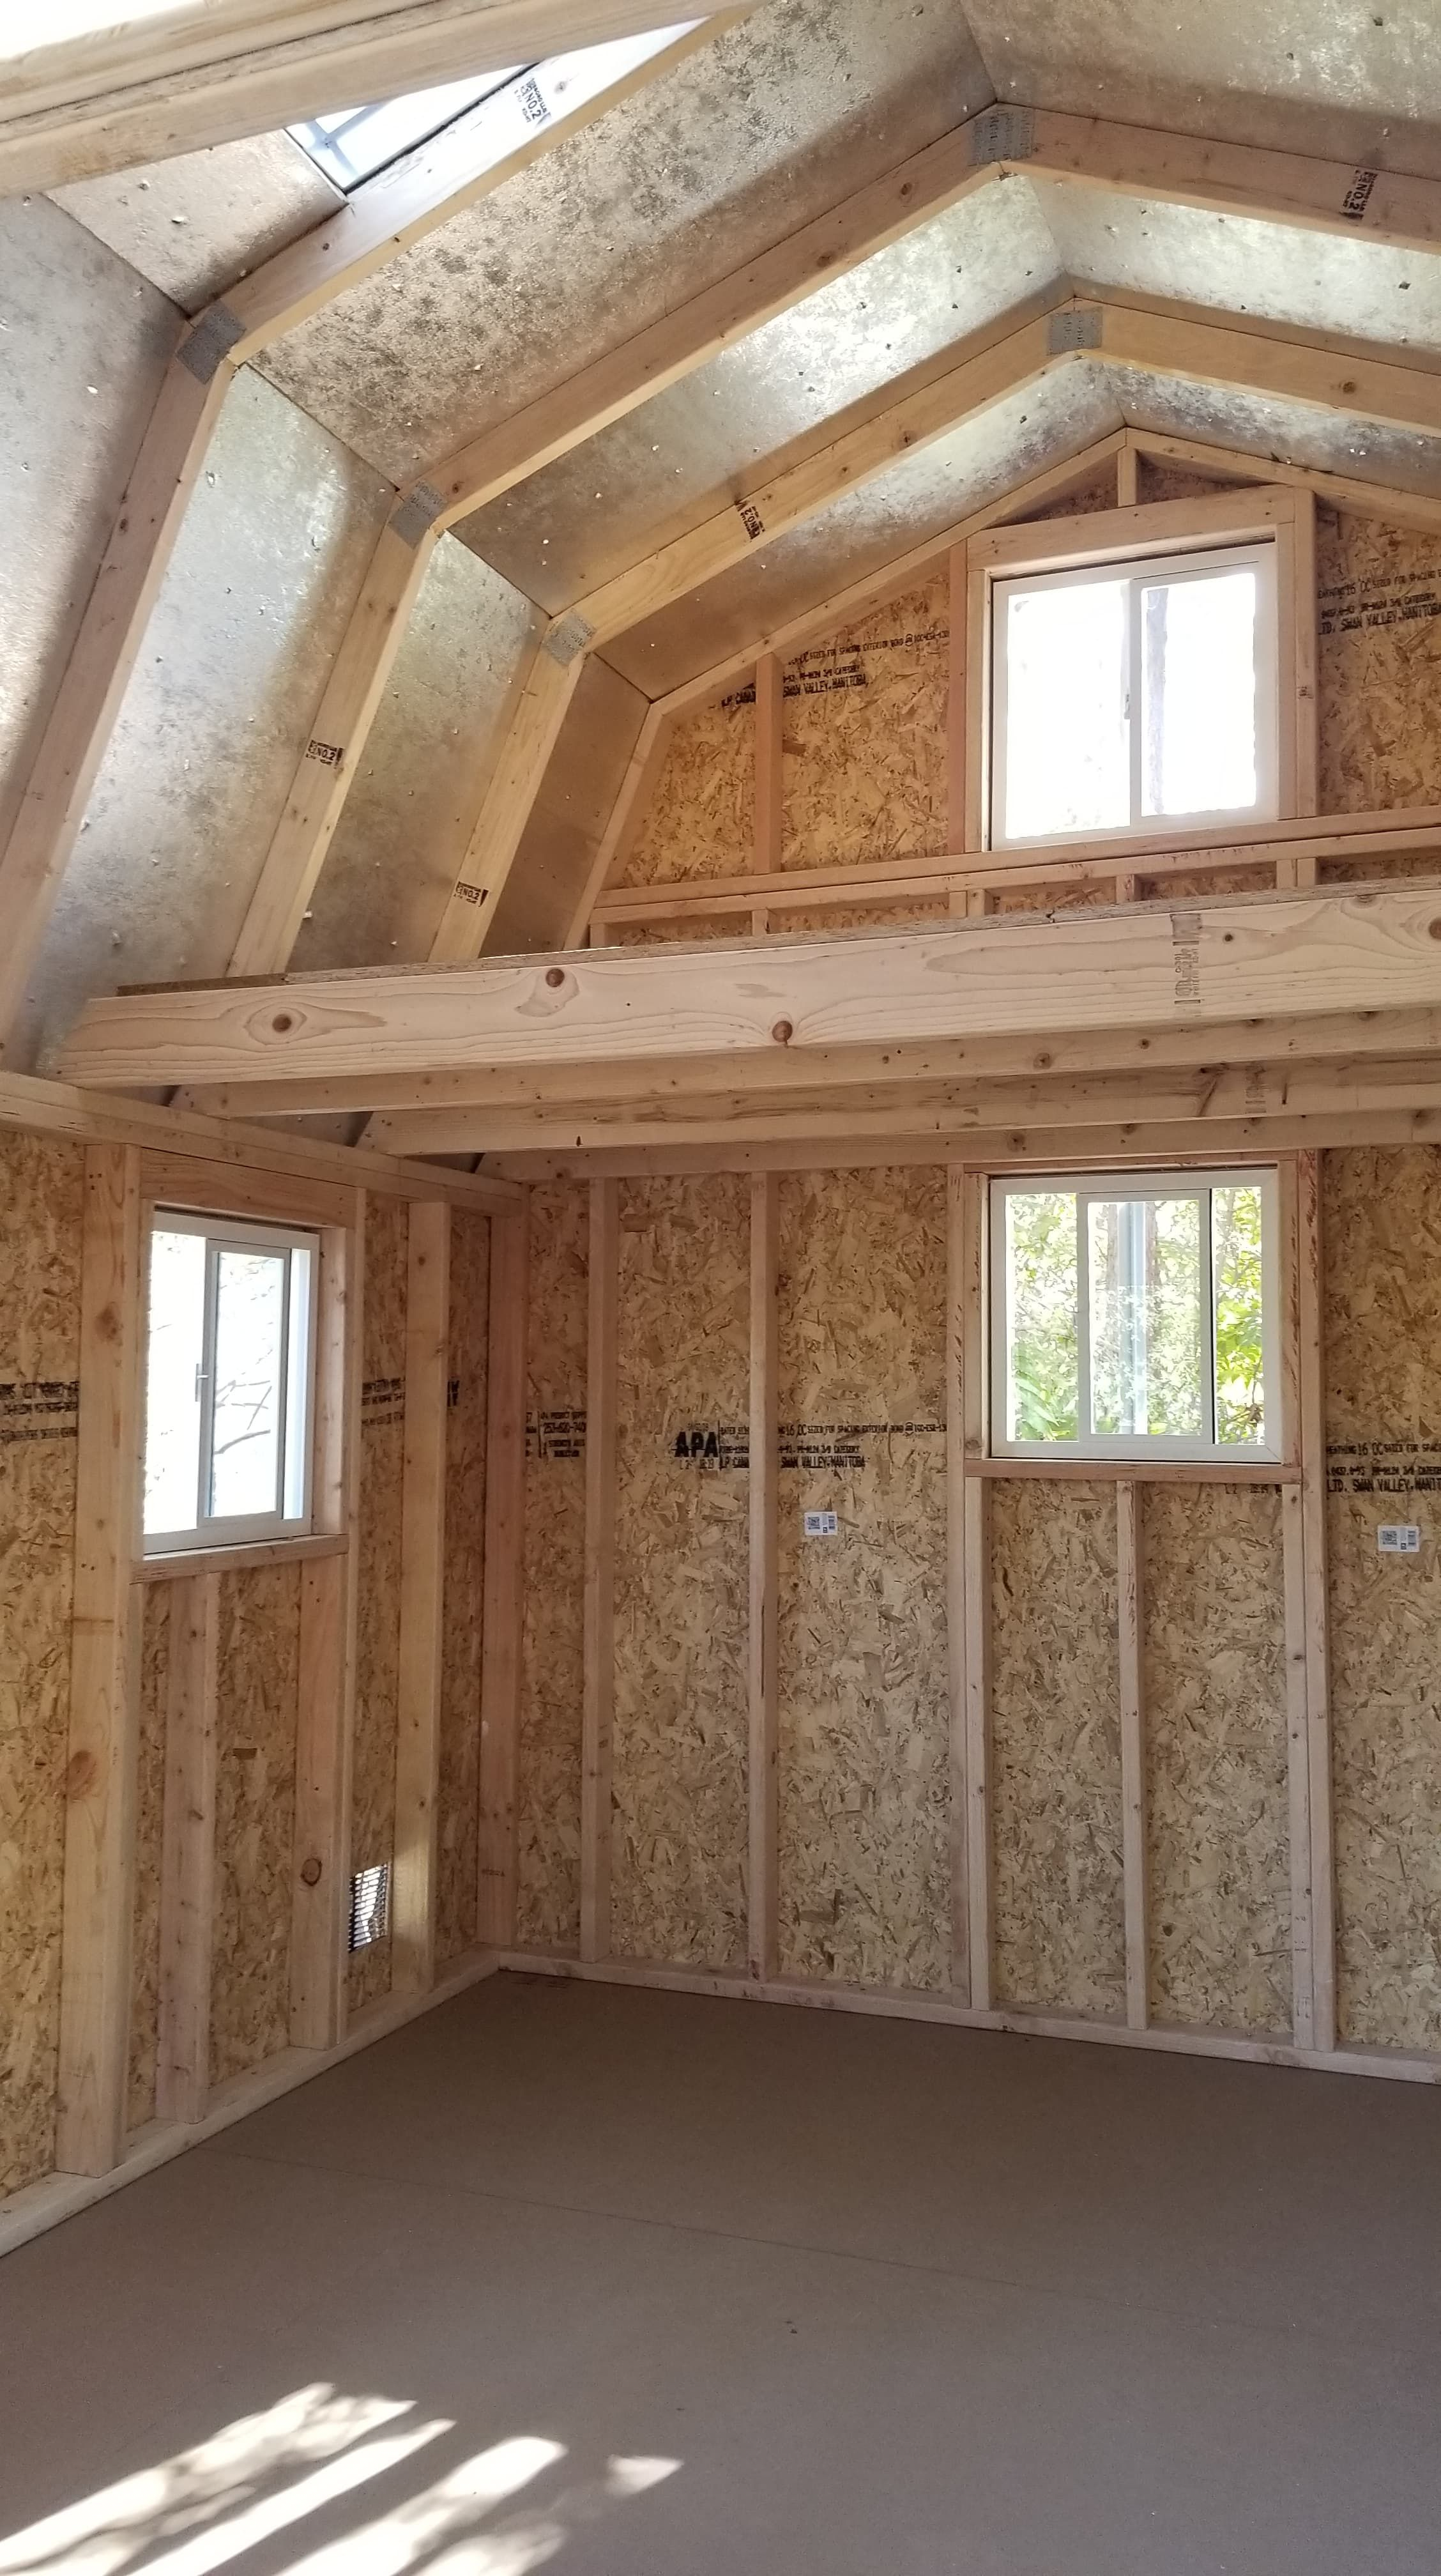 Give Yourself The Gift Of More Storage Space With A New Barn In Your Backyard Add A Loft Shelving A Workbench Pe Shed With Loft Shed Homes Shed House Plans